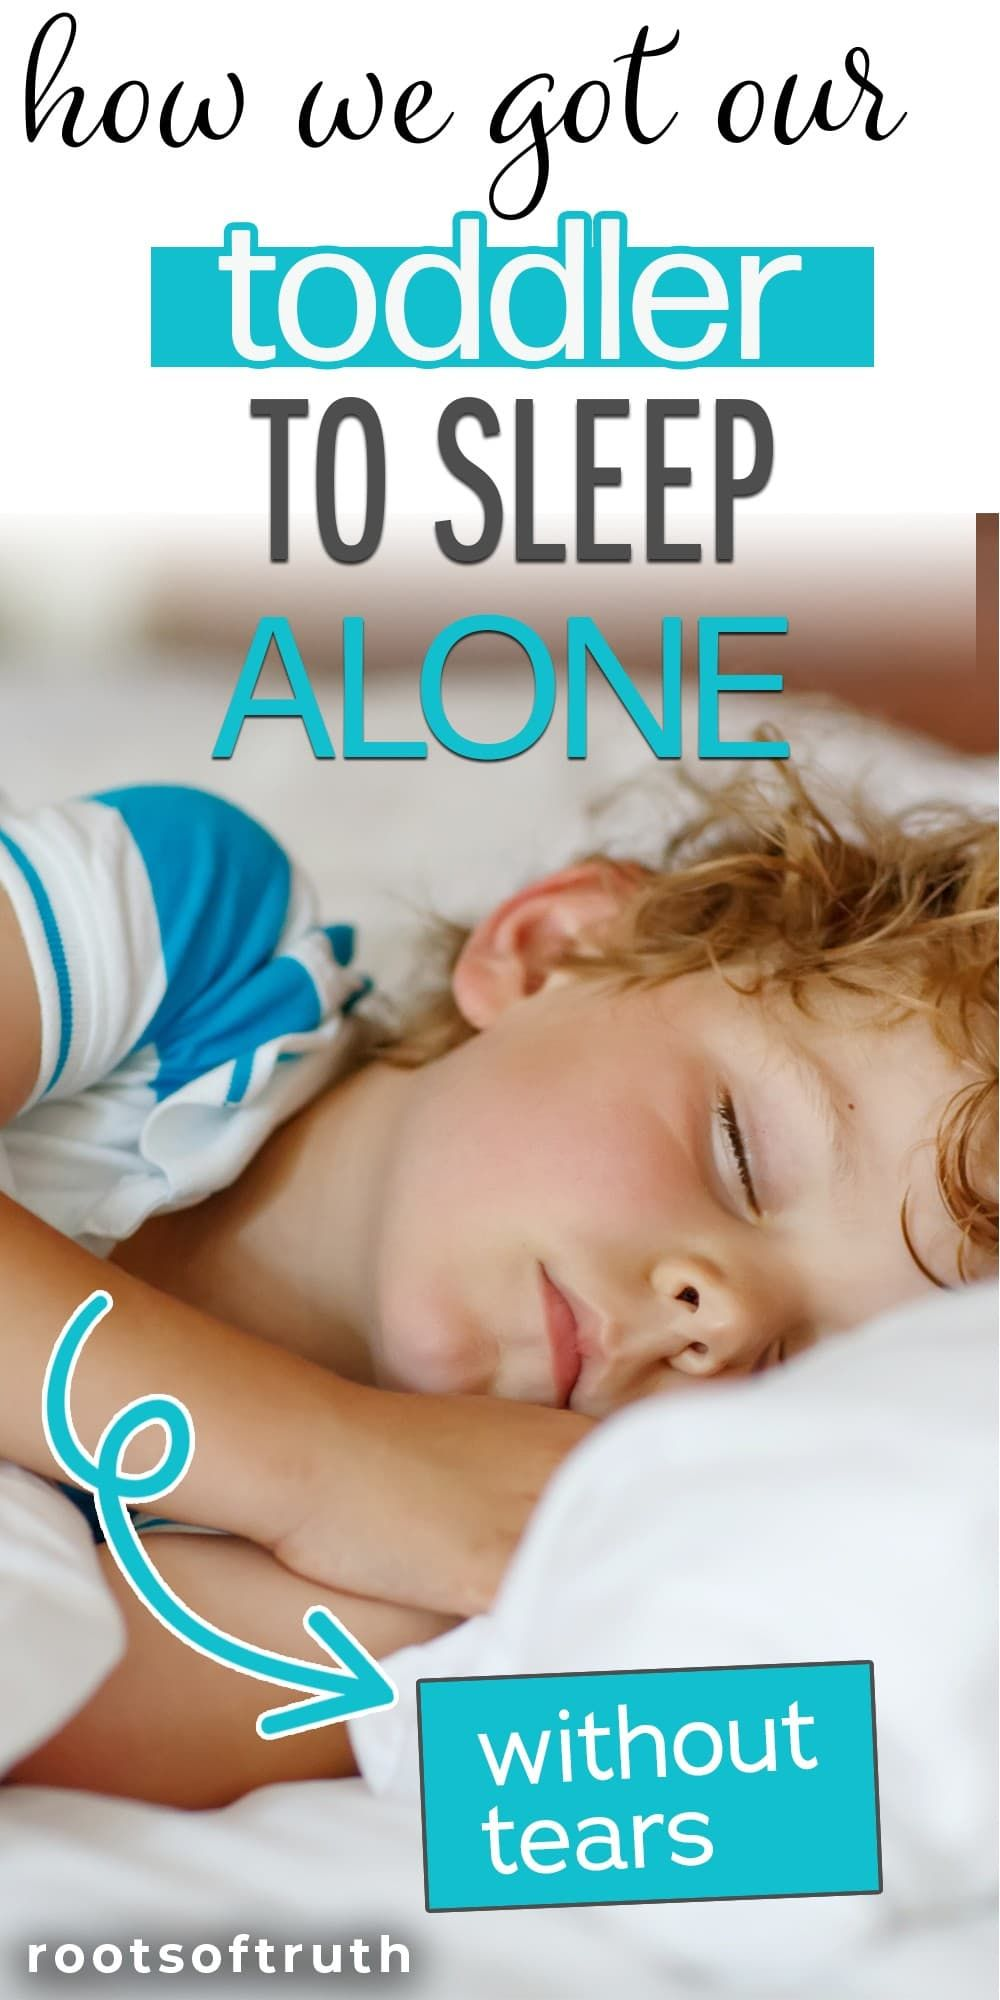 How To Get My 4 Month Old To Sleep Alone